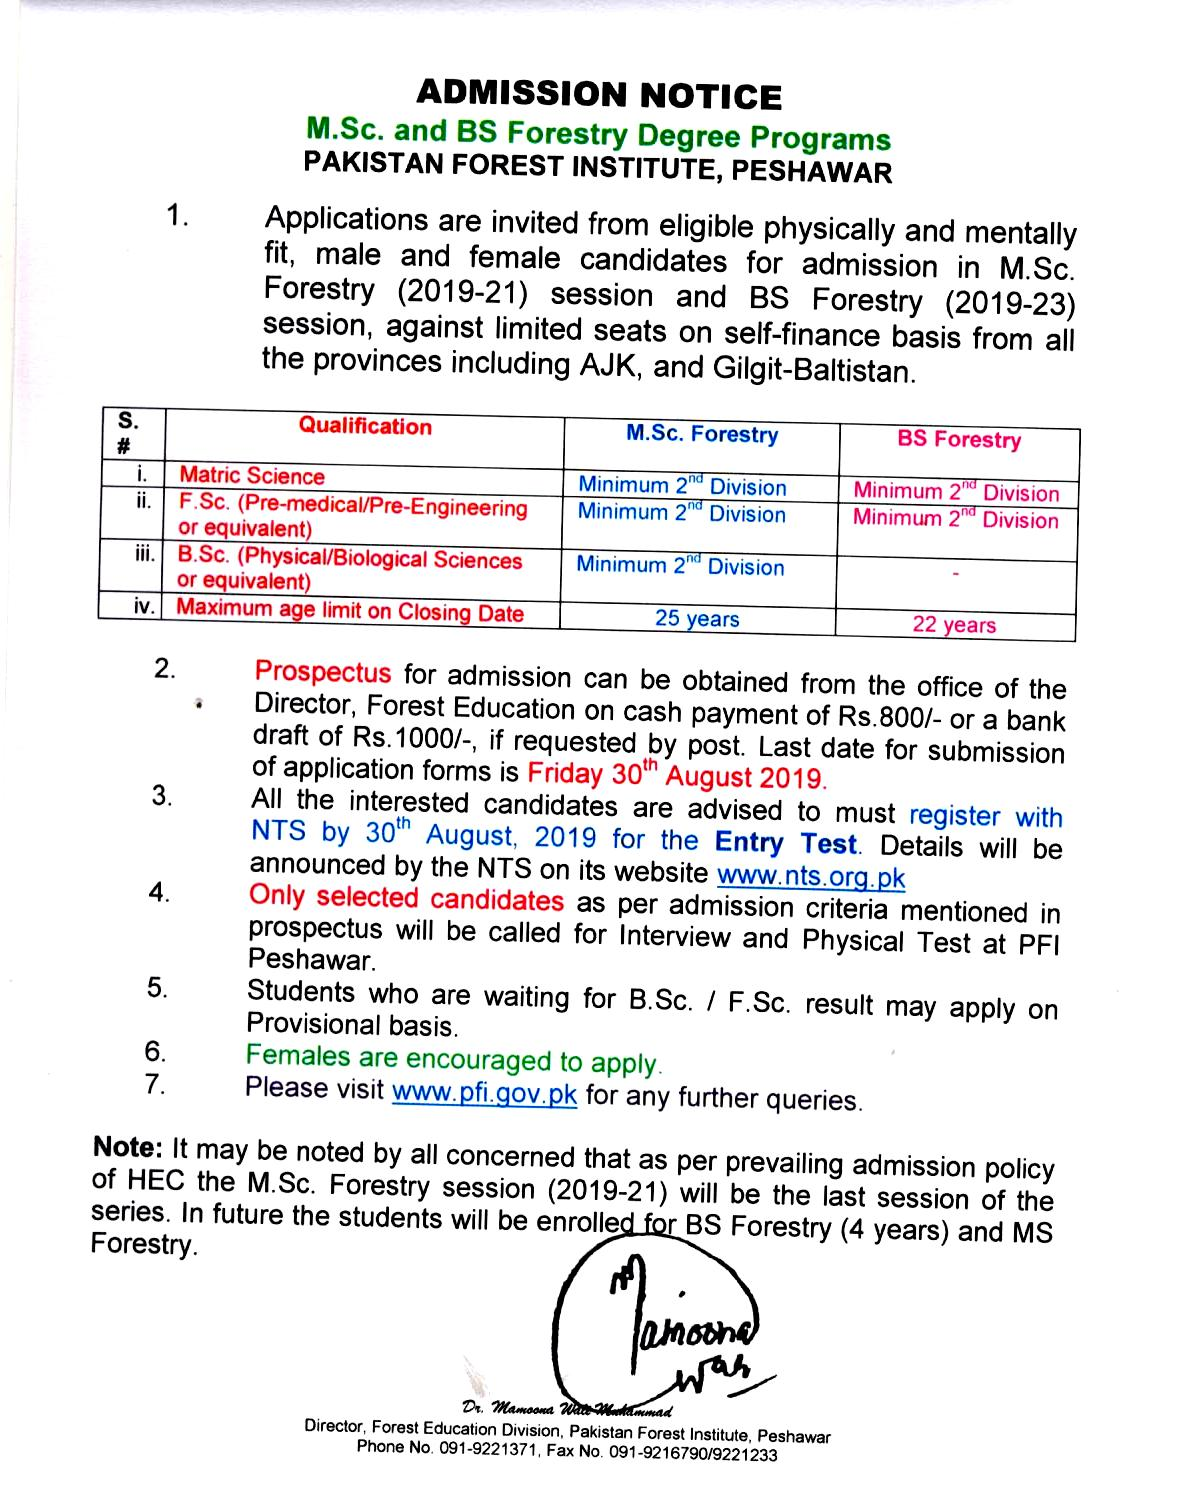 Pakistan Forest Institute PFI Peshawar BS Forestry MSC Forestry Admission NTS Test Result